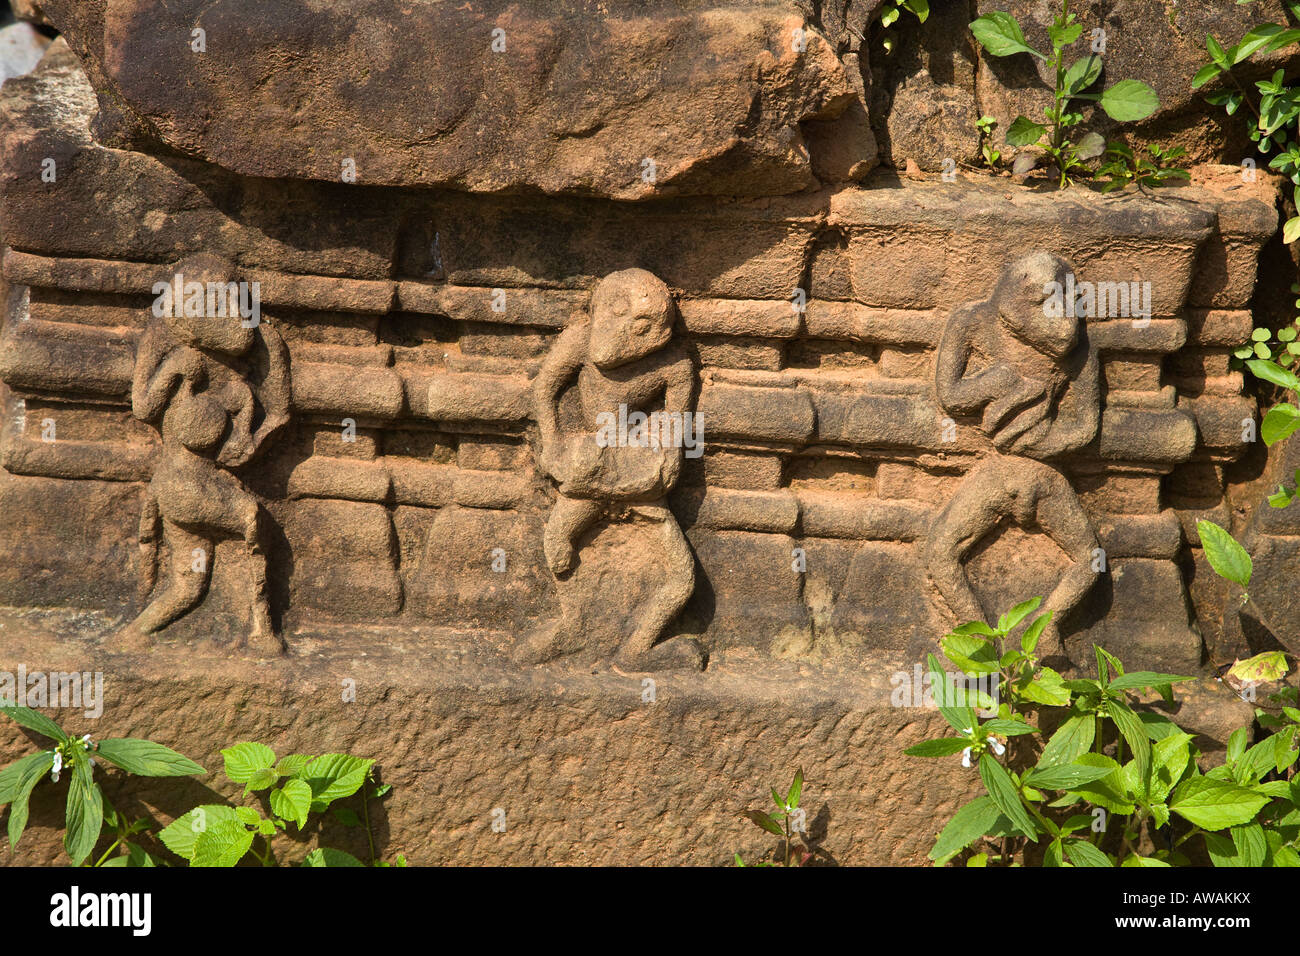 Ancient wall carvings of dancing monkeys reflect the MALAYO POLYNESIAN ARCHITECTURE of the CHIEN DANG RUINS TAM - Stock Image